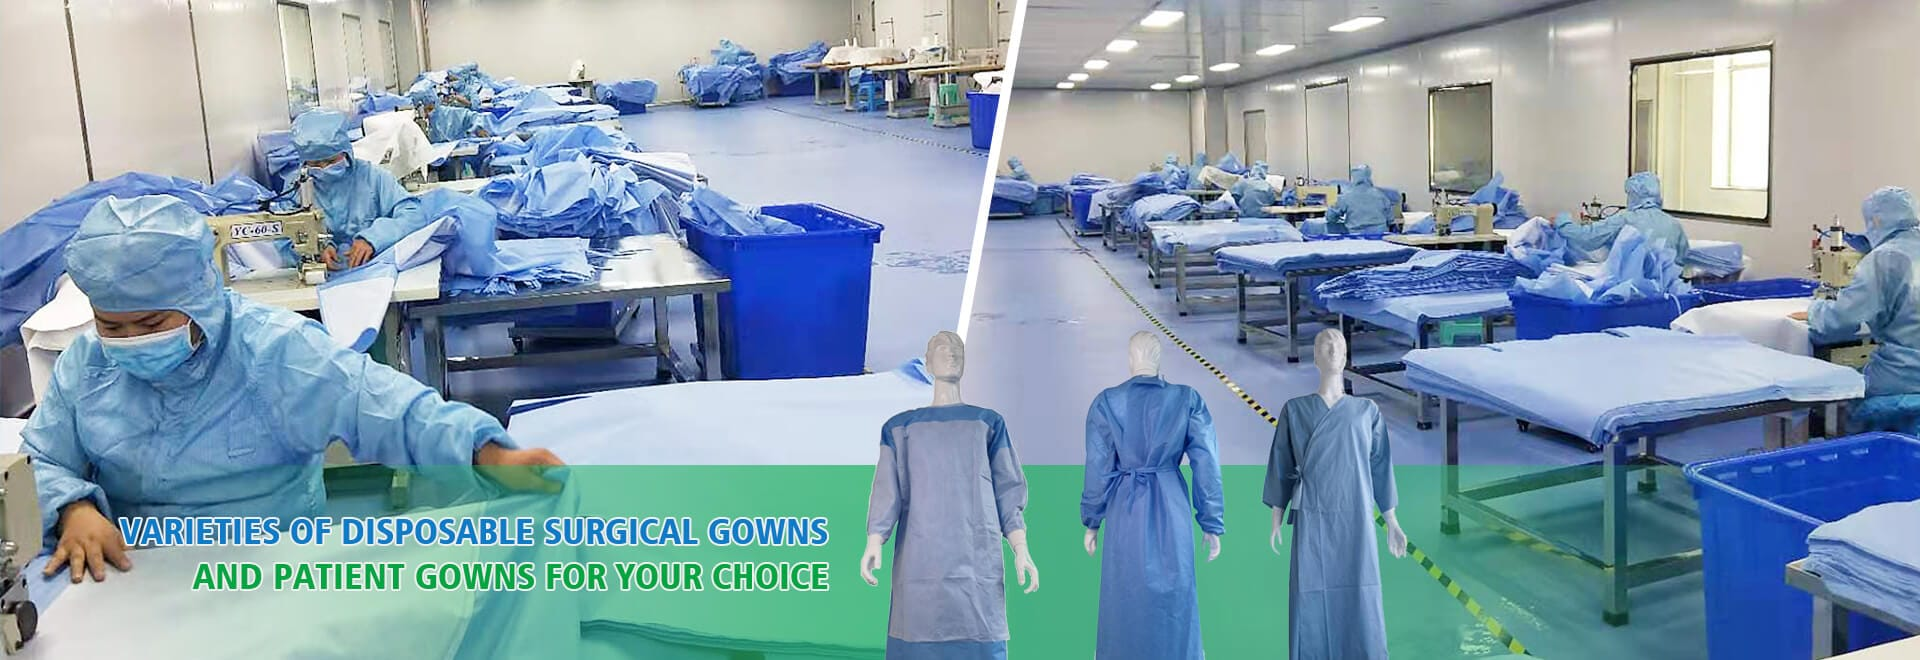 Lantian Medical is a professional manufacturer of surgical drapes and gowns, surgical packs, hospital gown and hospital bed sheet, which have received high prai